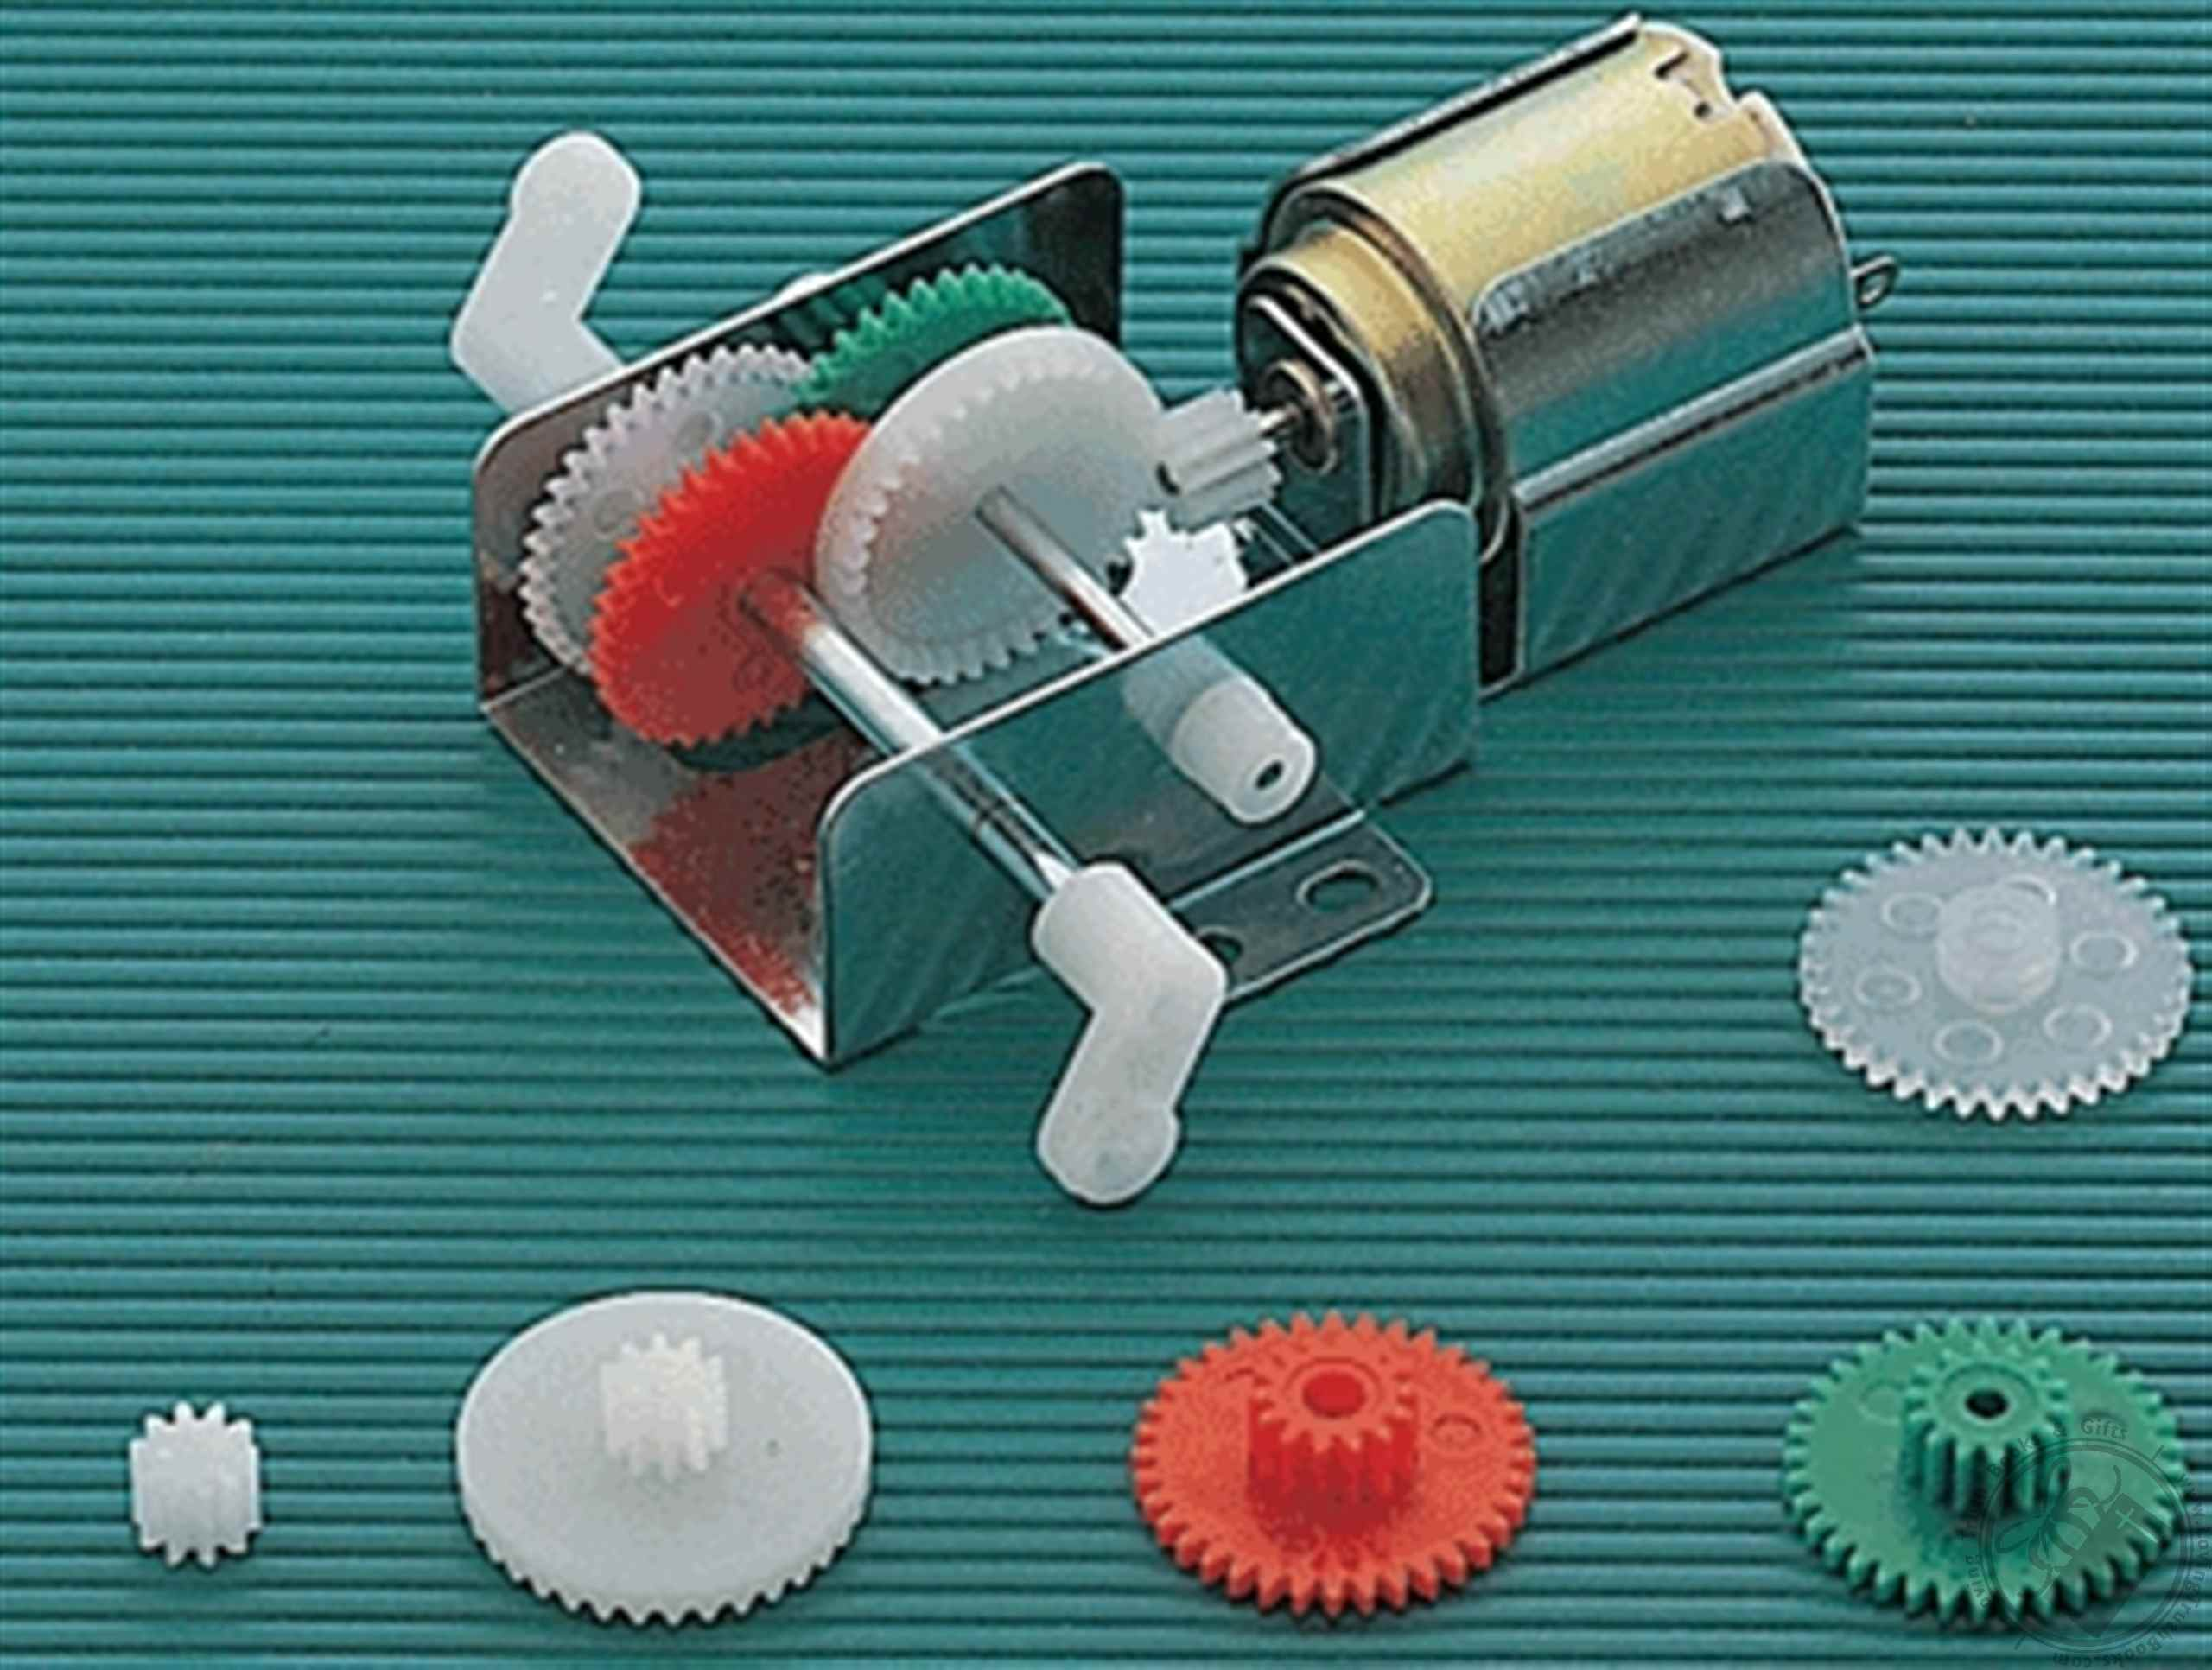 Do it yourself 2 in 1 gearbox kit electronic experiment kit by views click to preview solutioingenieria Images